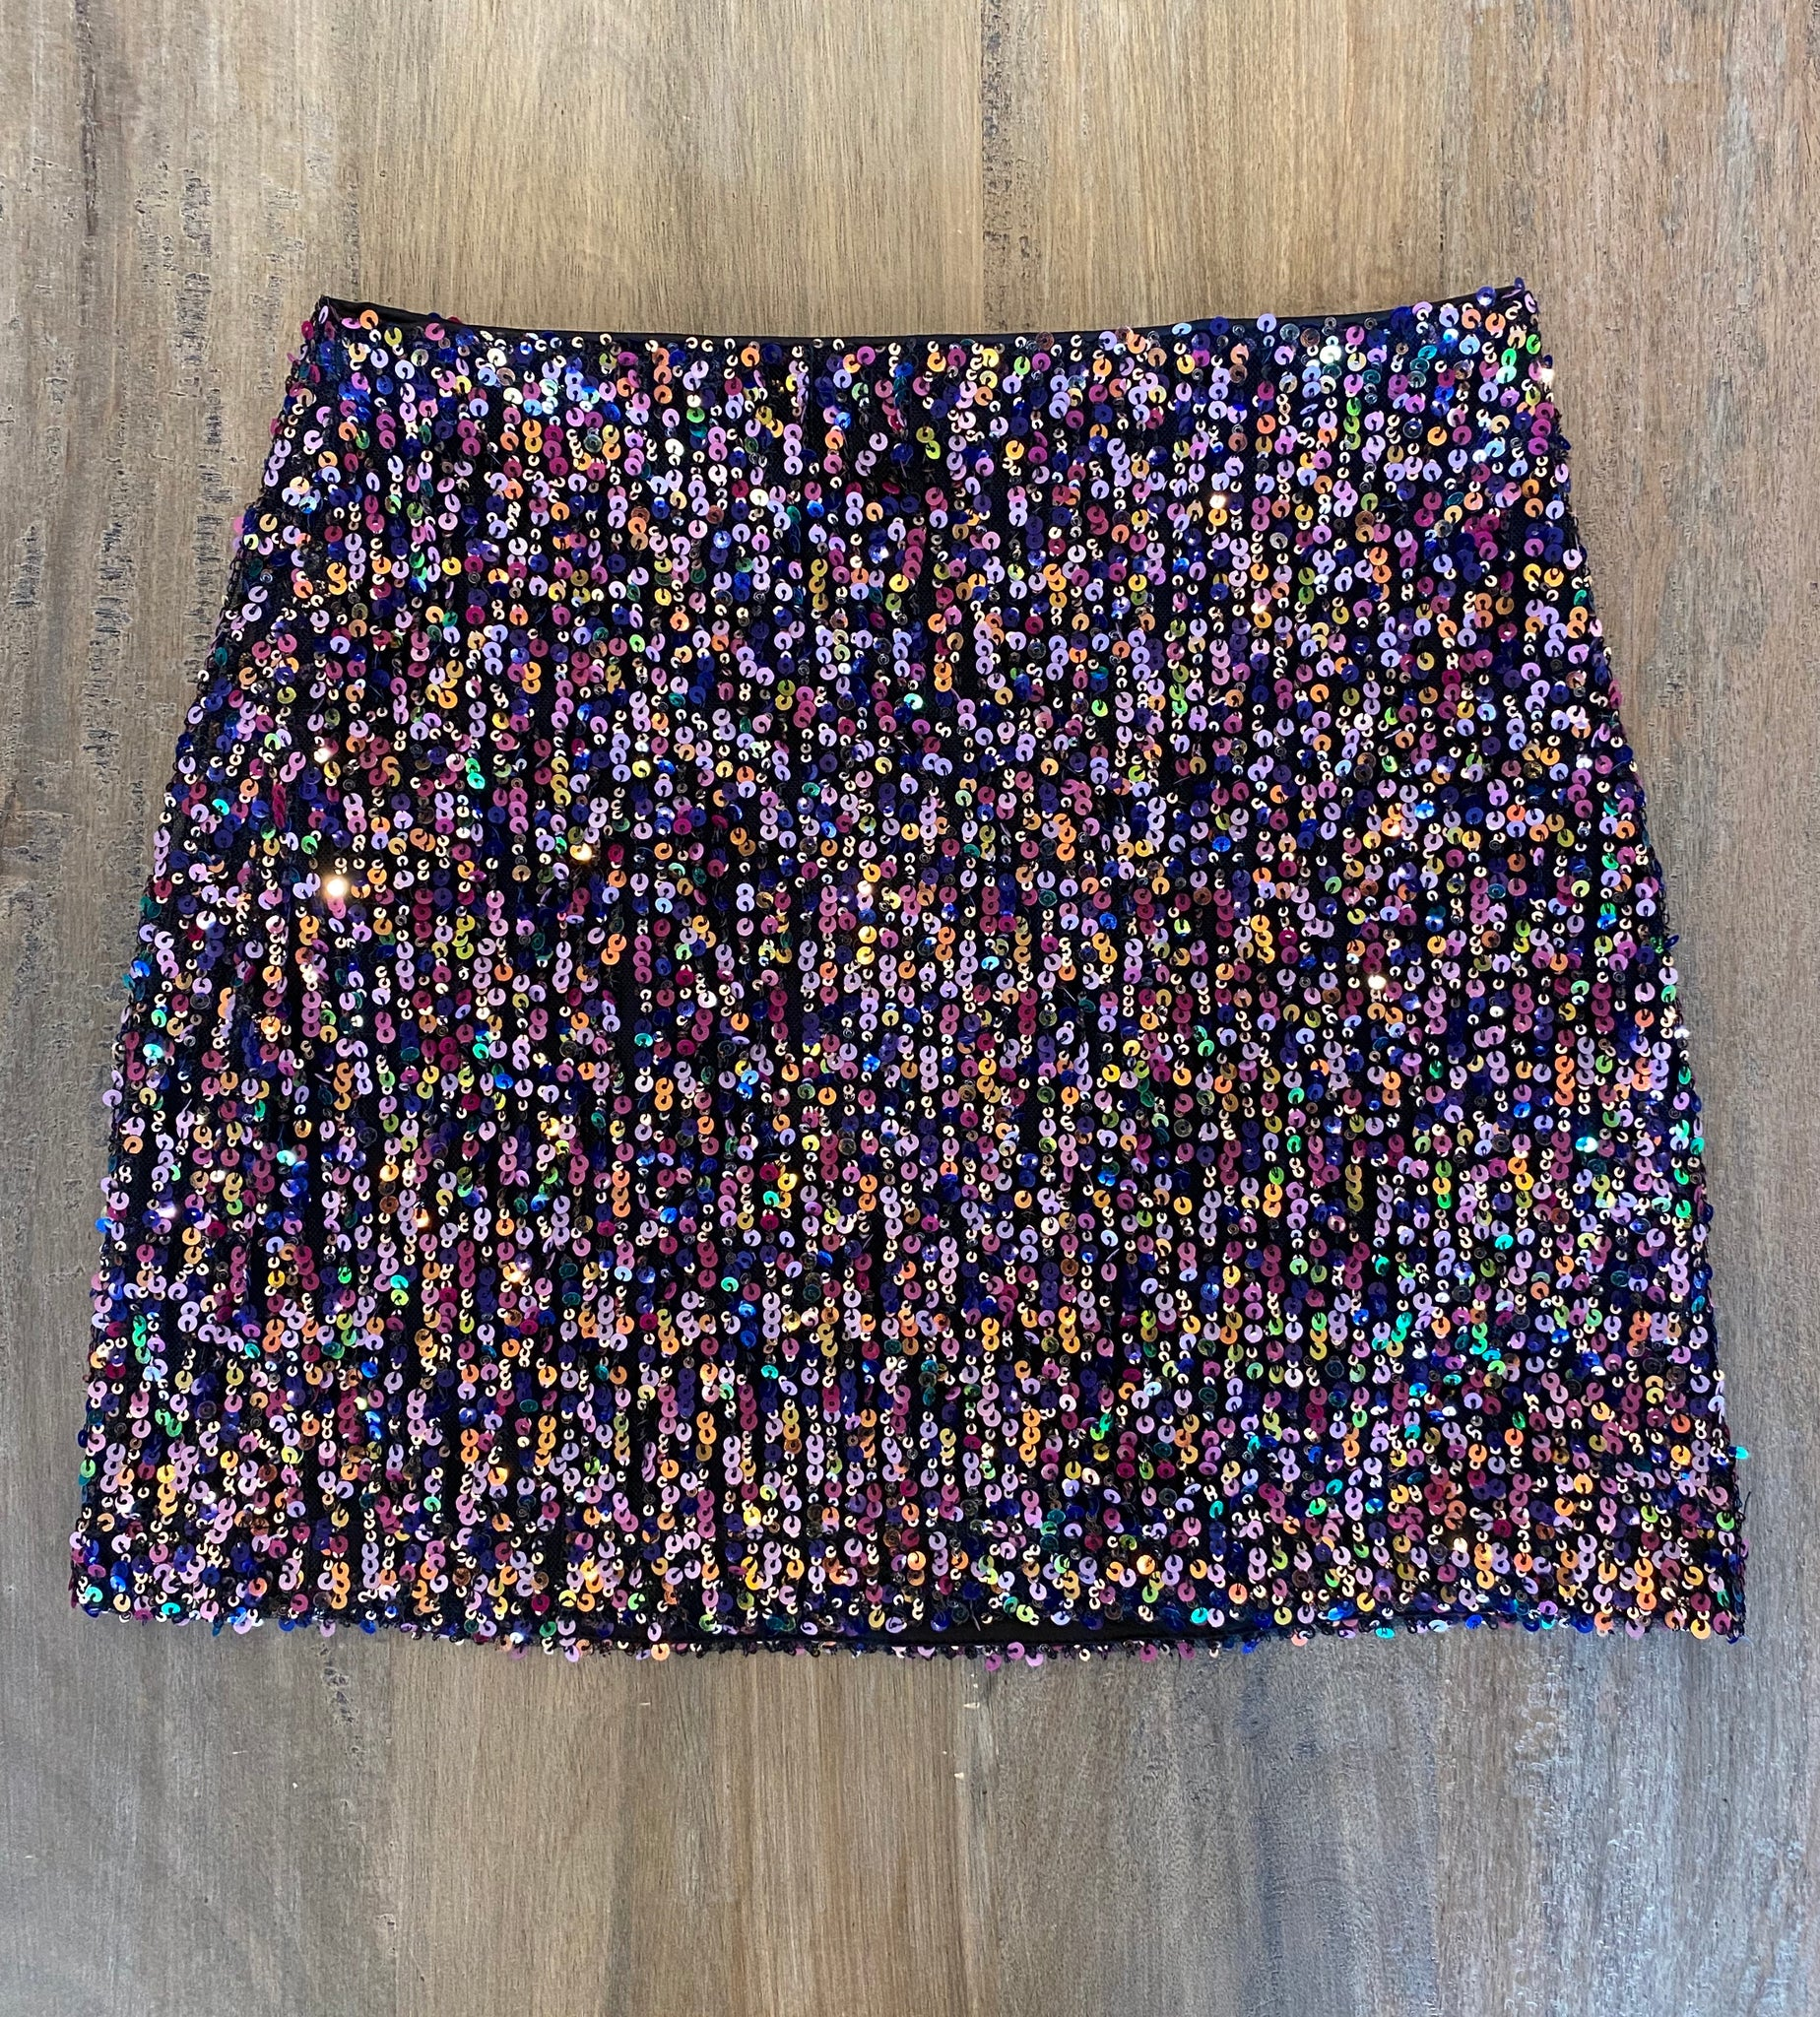 August Apparel Multi Sequin Mini Skirt - Showroom56